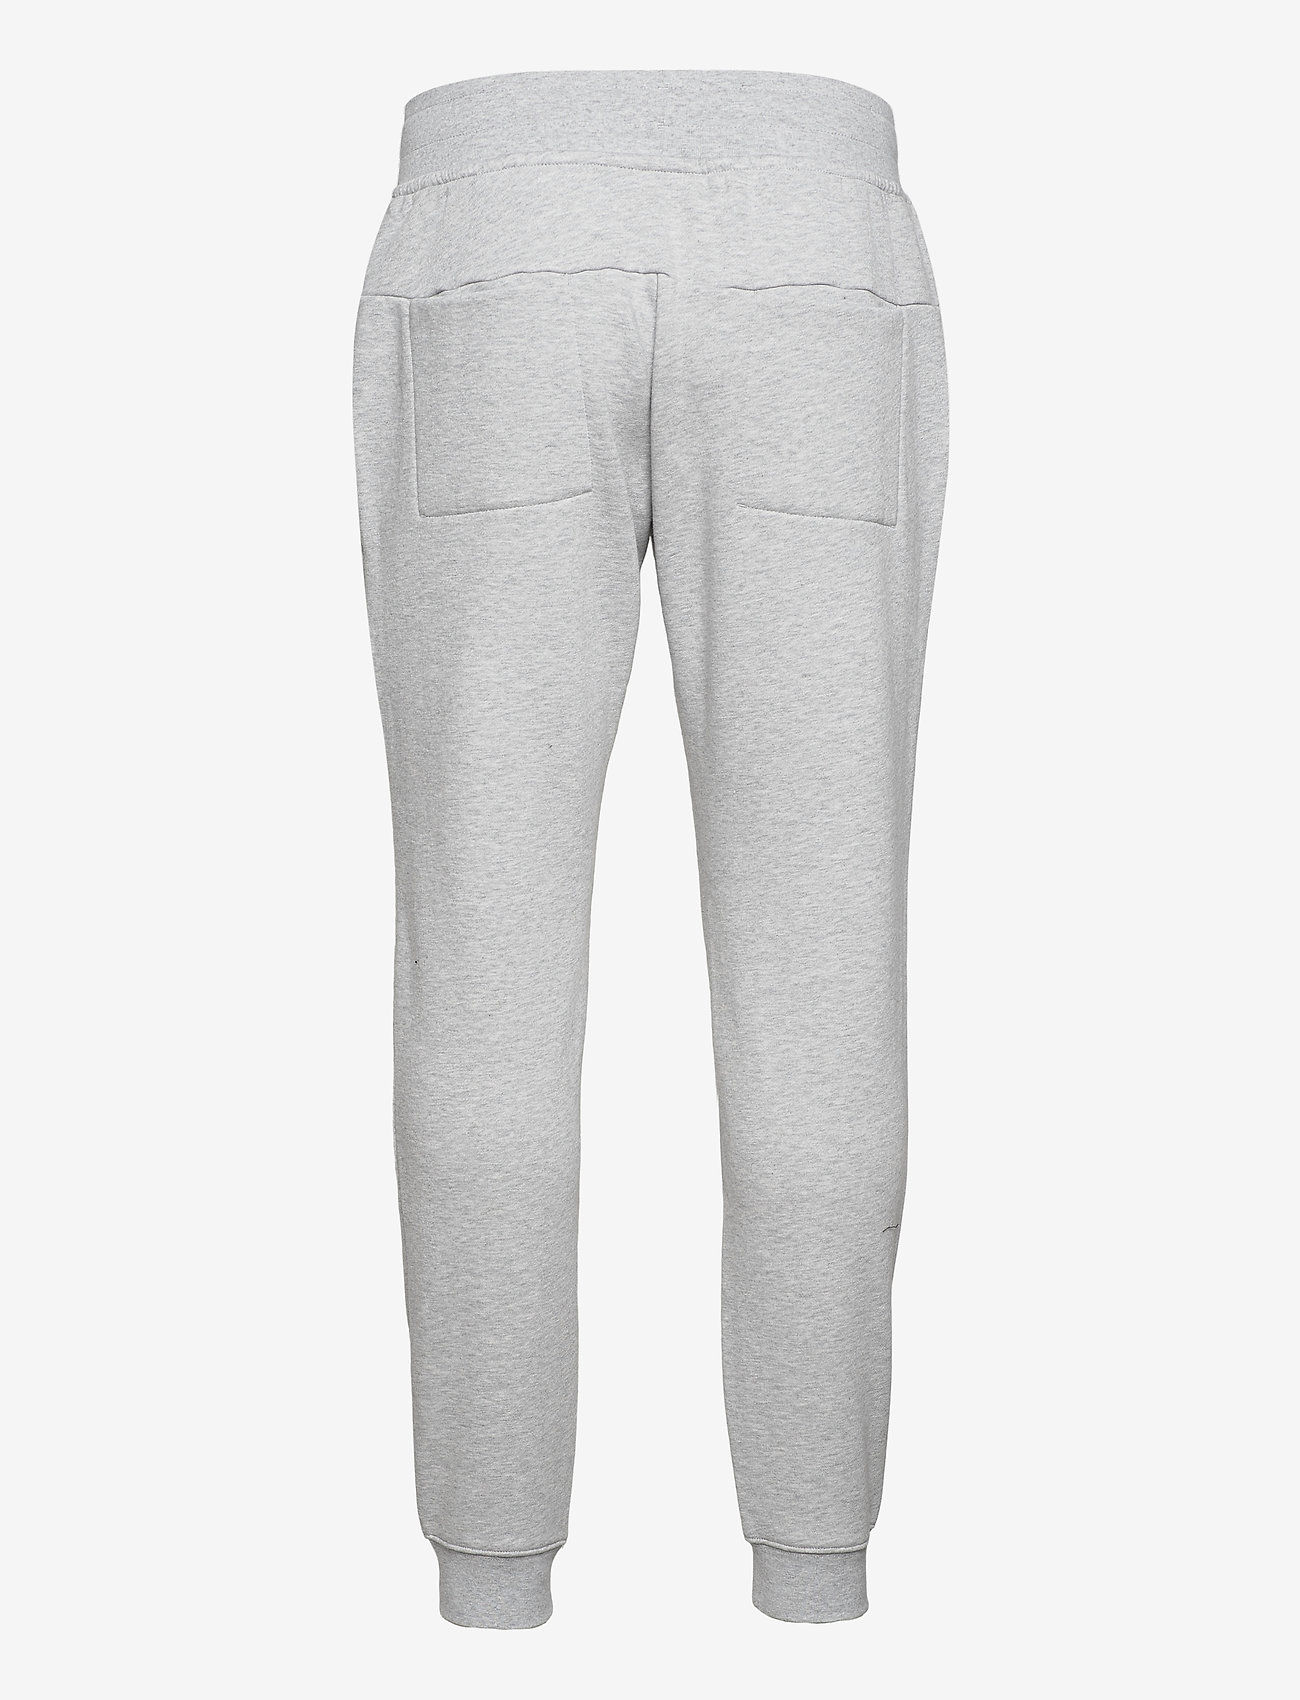 Björn Borg - TAPERED PANT CENTRE CENTRE - joggebukser - h108by light grey melange - 1